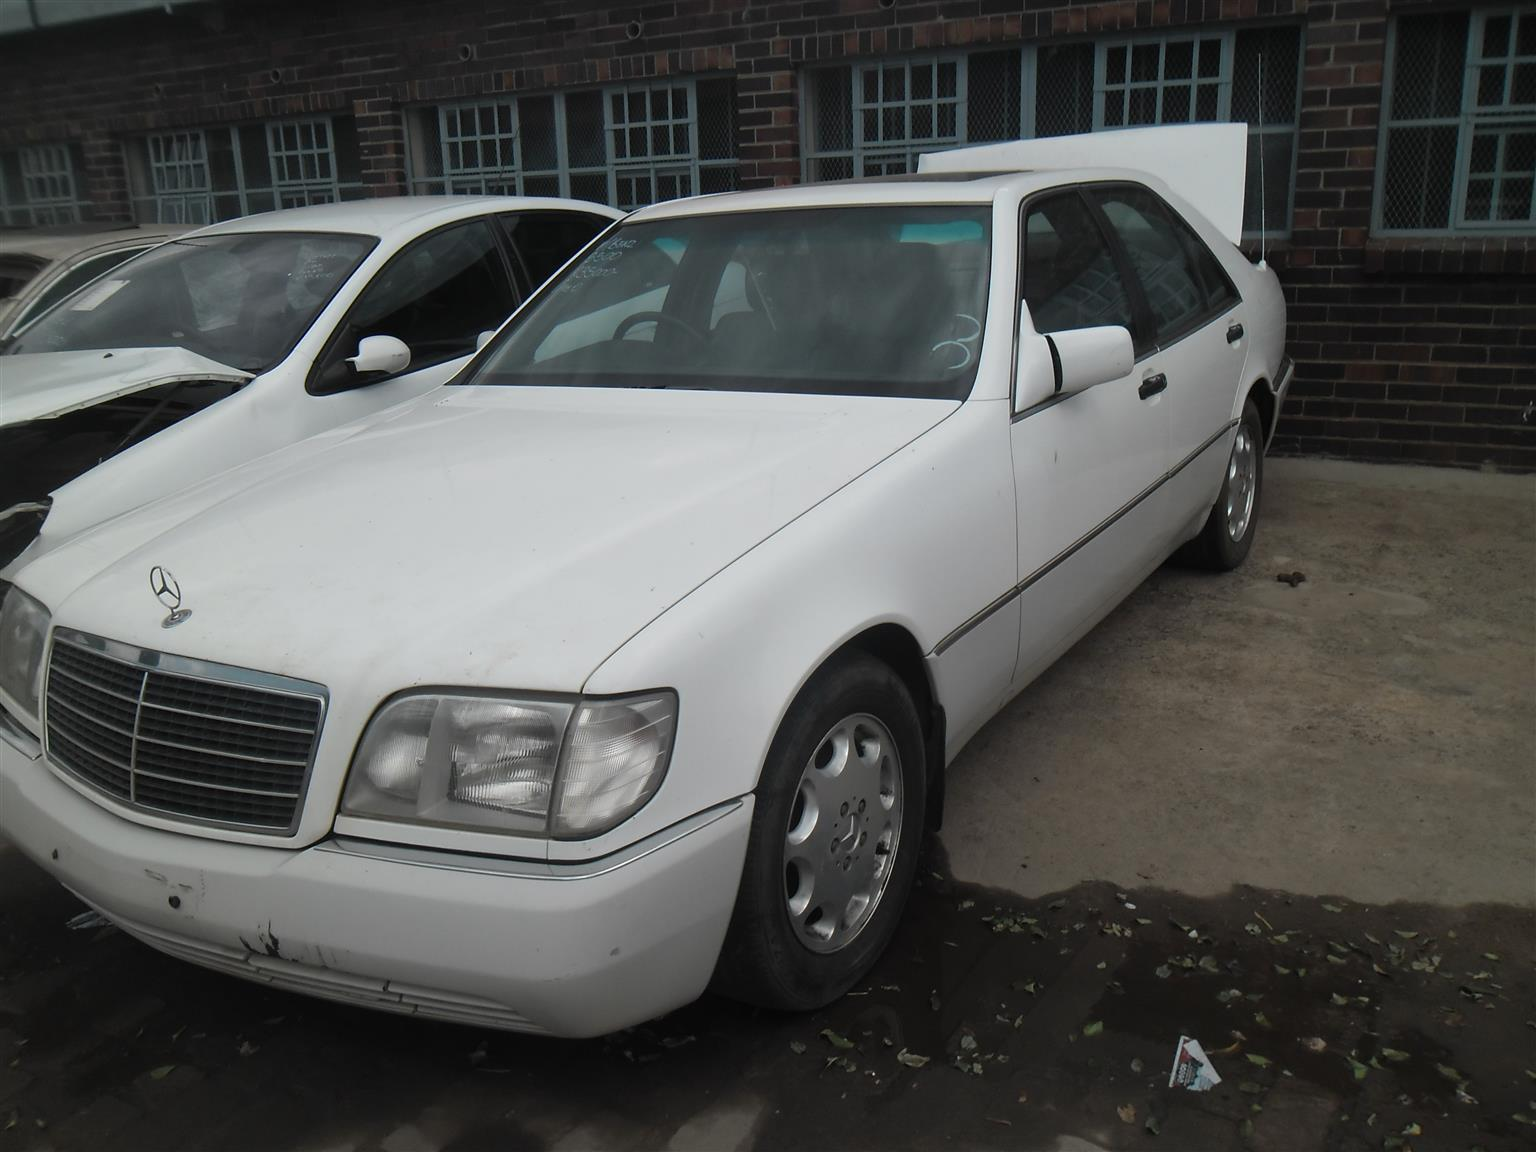 Mercedes benz s500 w140 stripping for spares gearbox for for Mercedes benz s500 parts